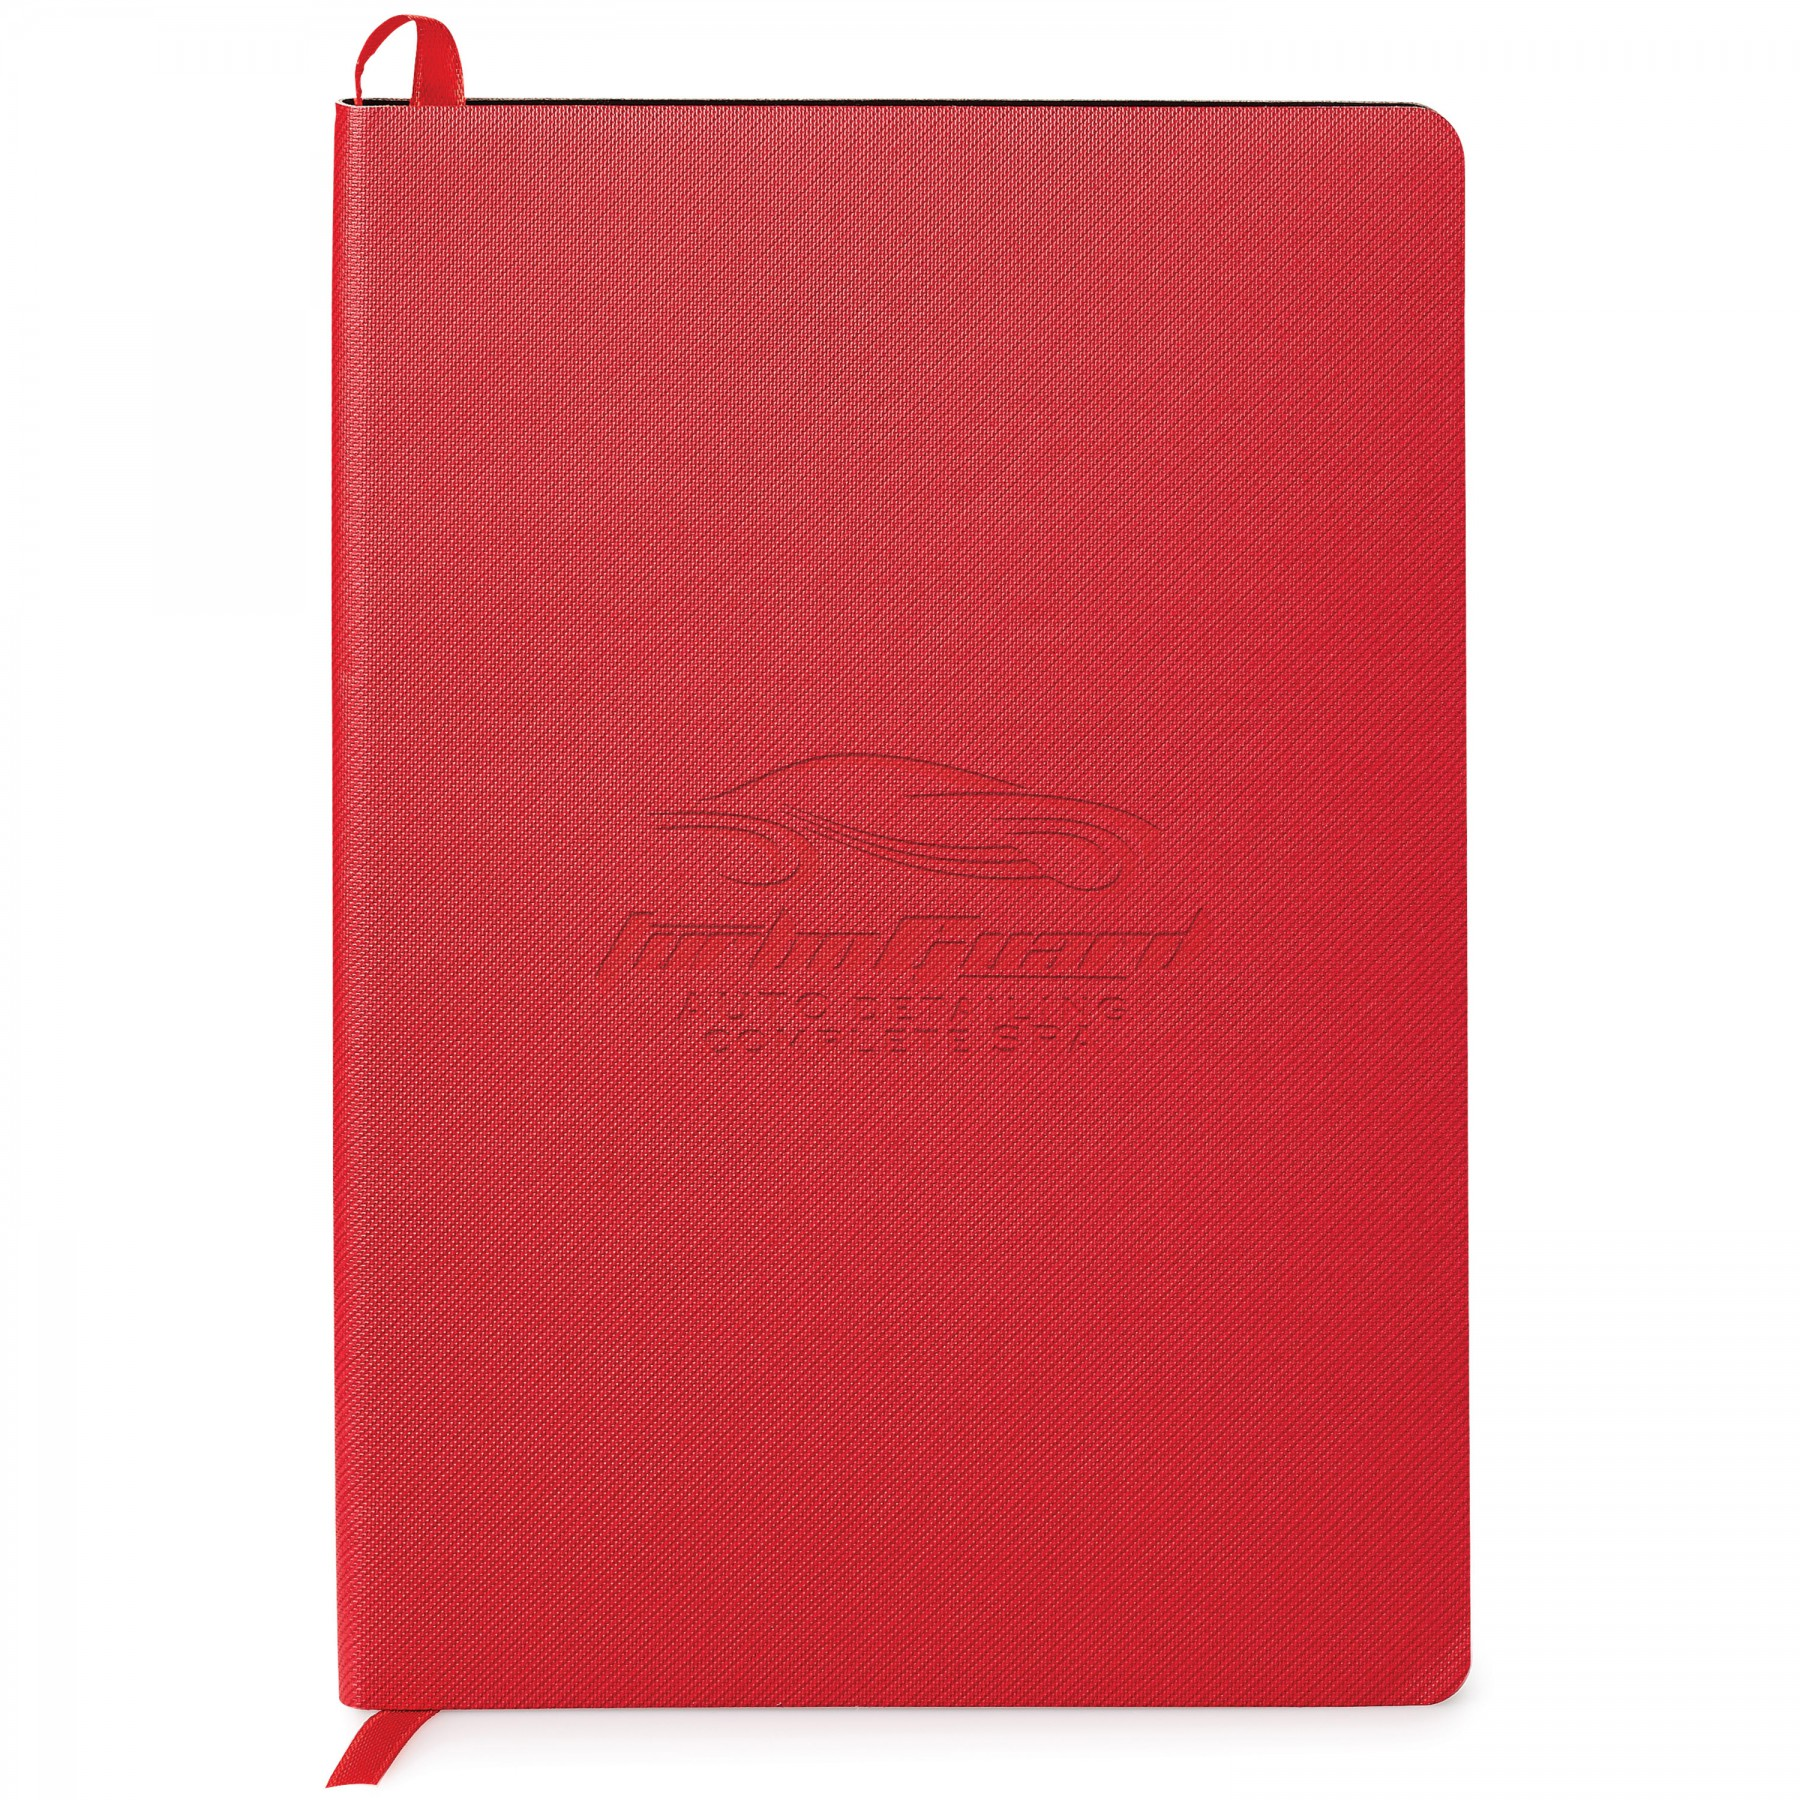 Milana Soft Cover Journal, ST4181, Debossed Logo